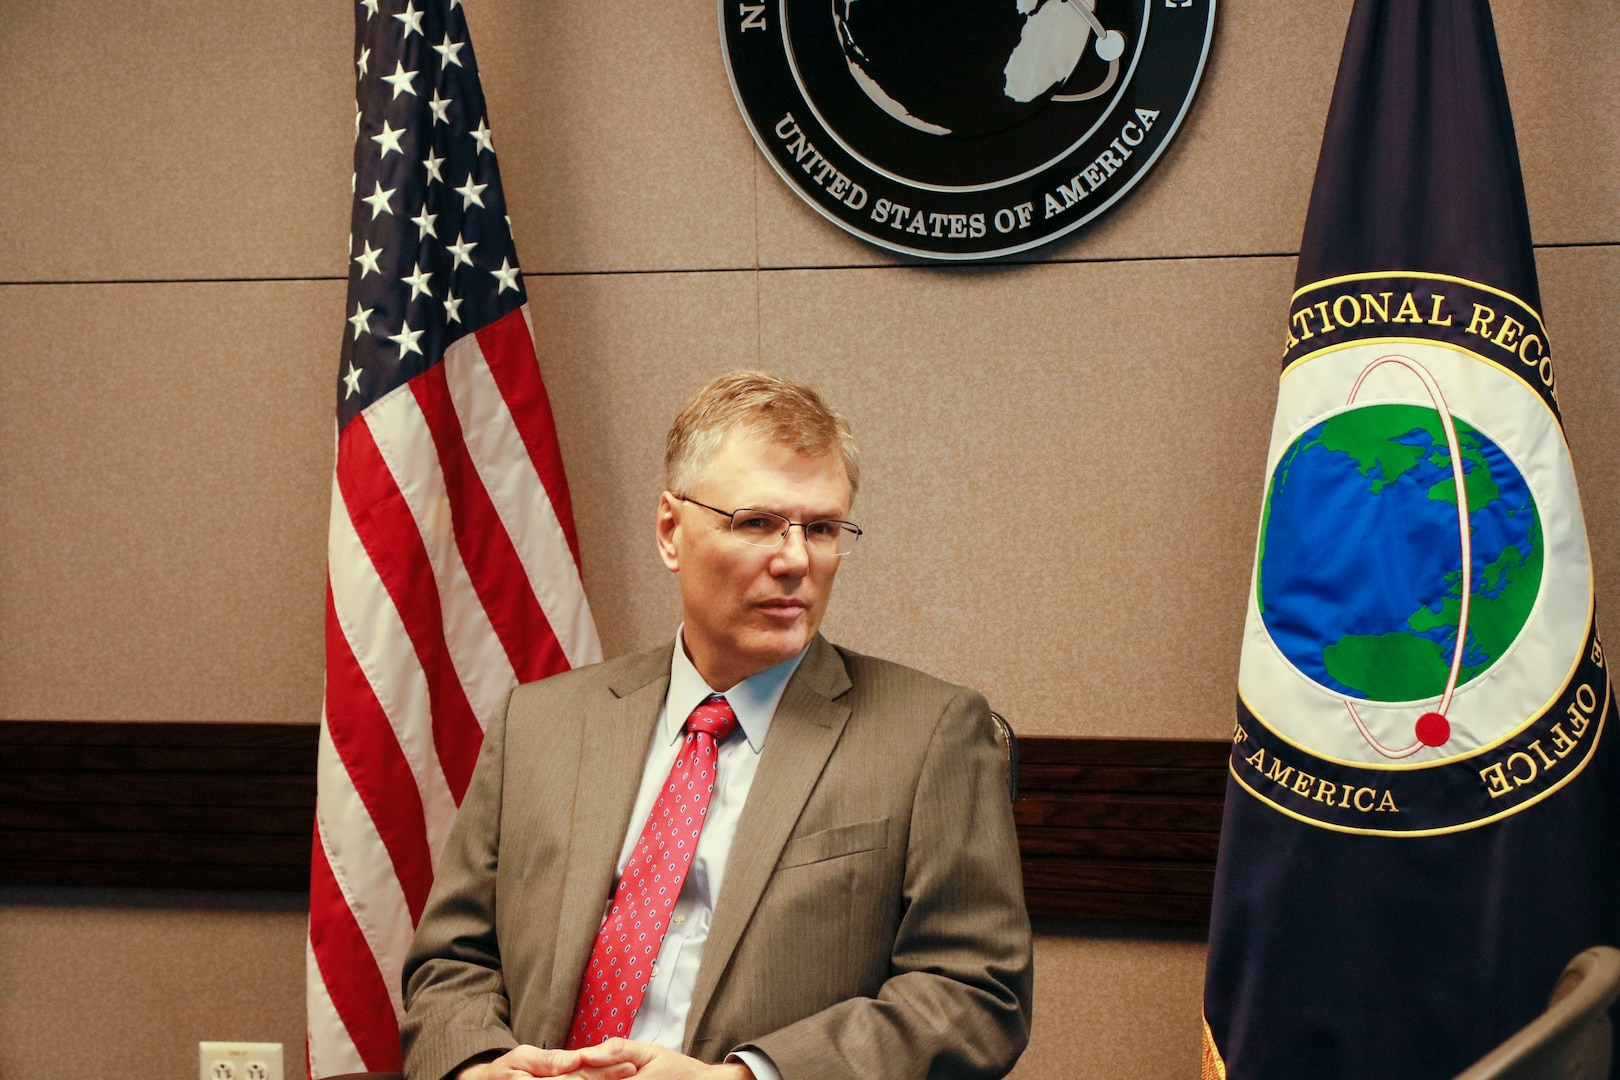 Dr. Meink Delivers Keynote at Ohio Space Forum